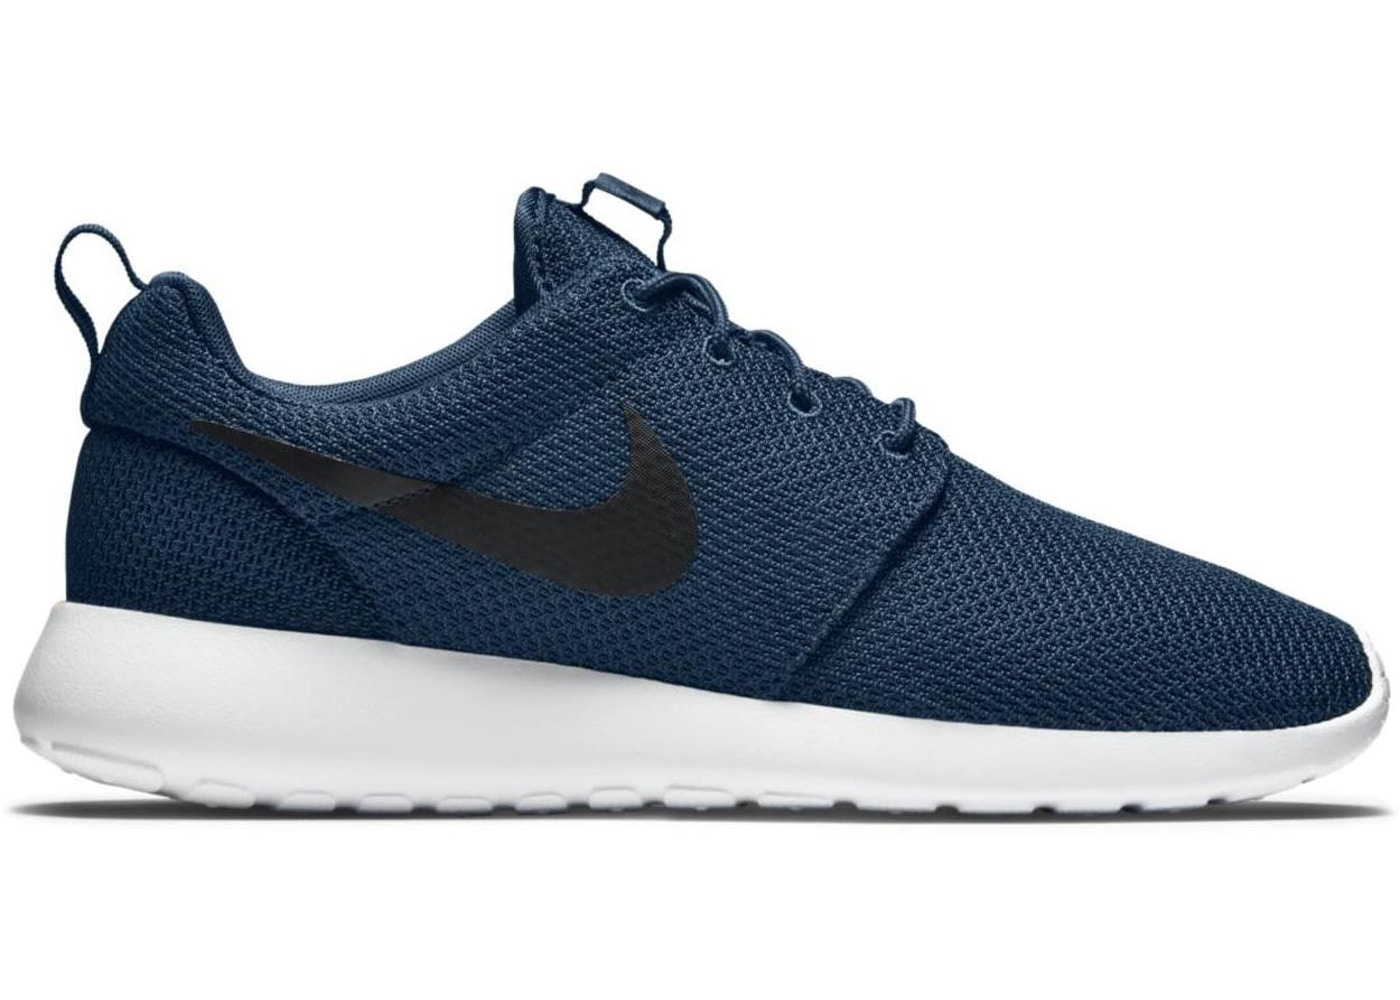 timeless design 510ba 89ea8 Nike Roshe Run Navy Black White